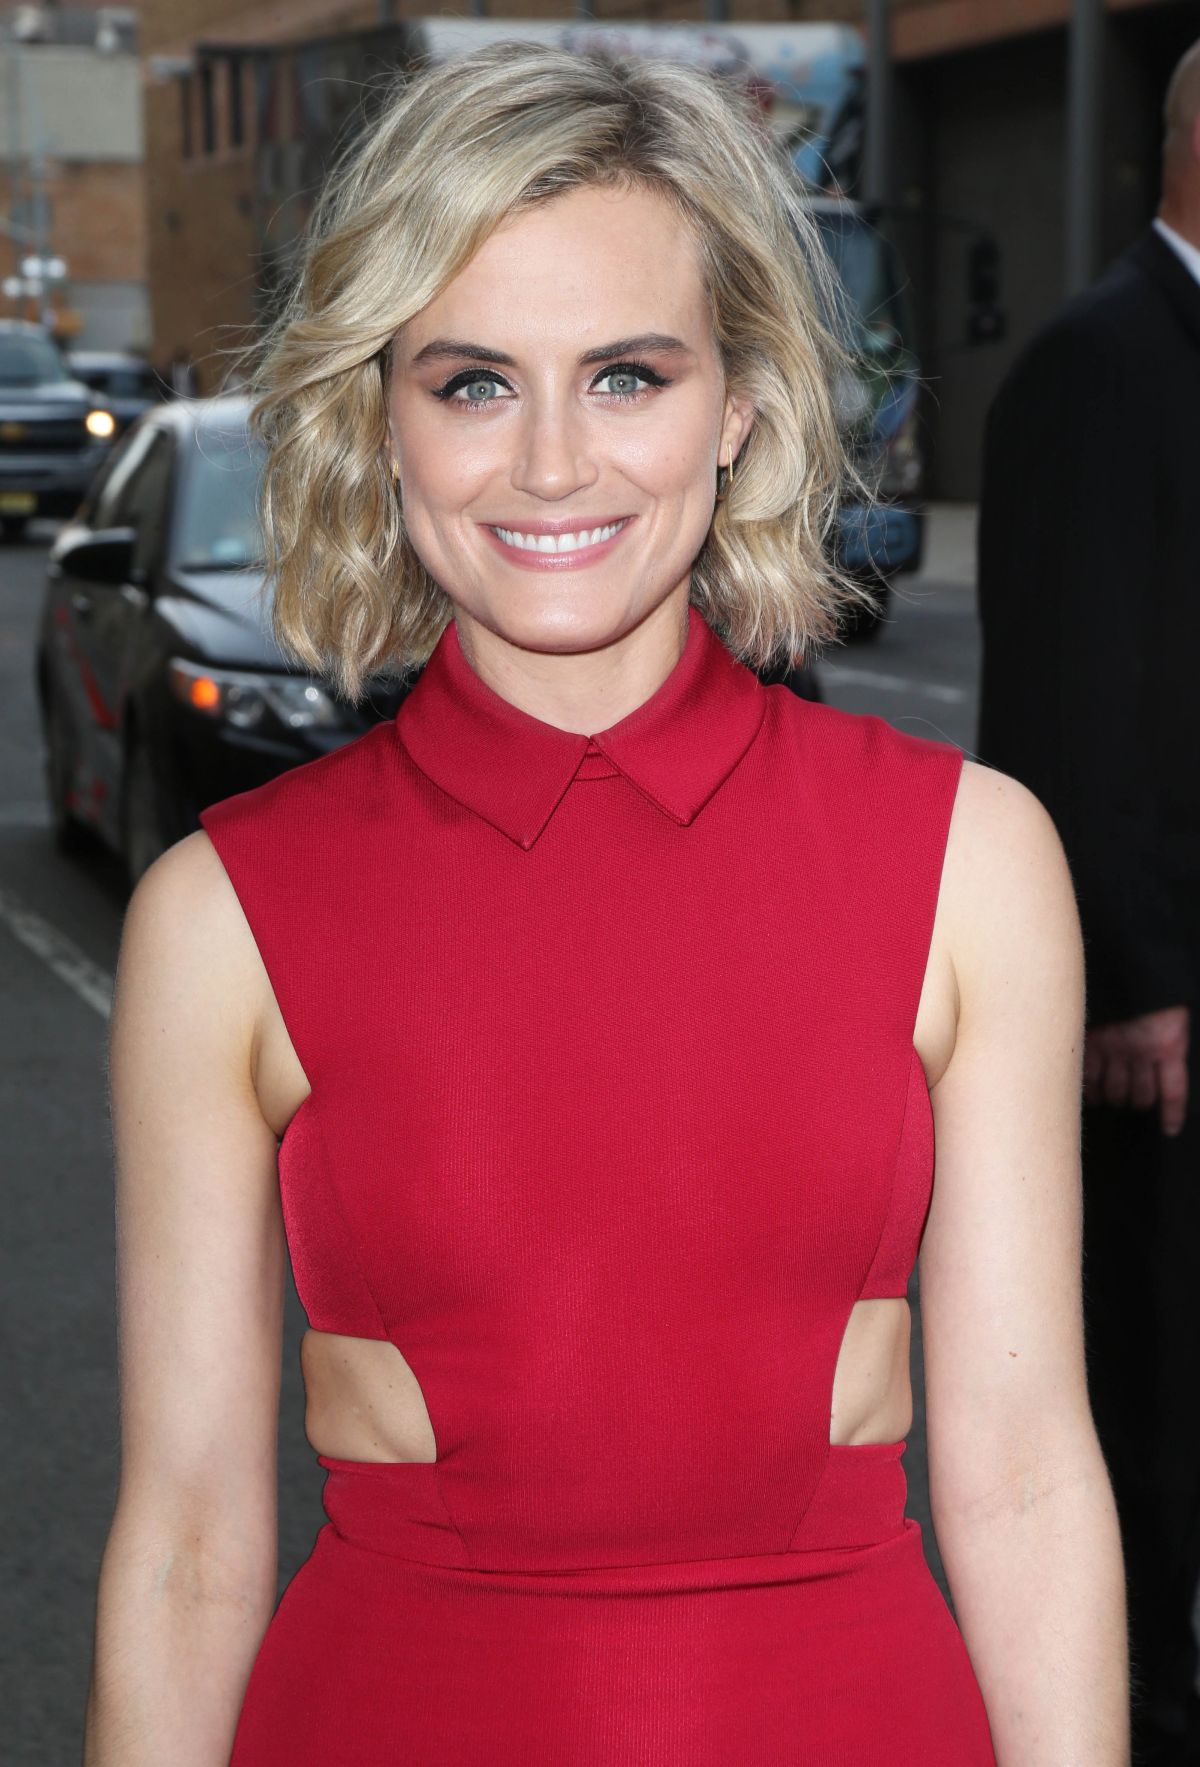 TAYLOR SCHILLING at Orangecon Fan Event in New York - HawtCelebs